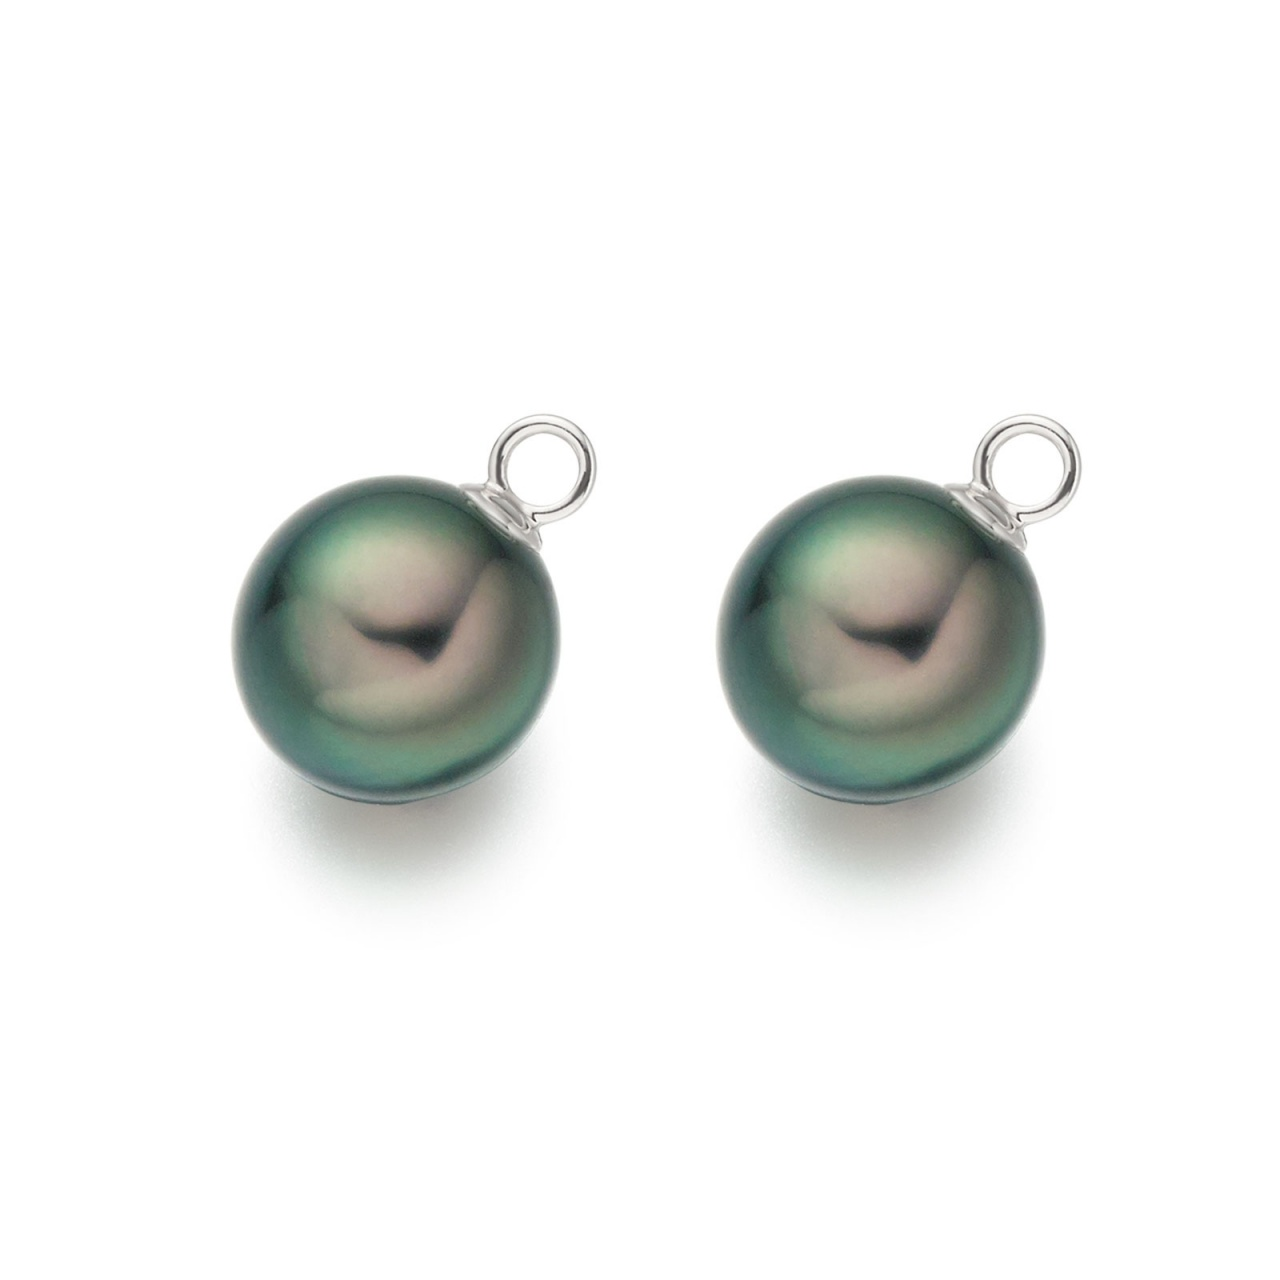 White Gold Diamond Leverbacks with Peacock Tahitian Pearls-TEPRWG0276-1